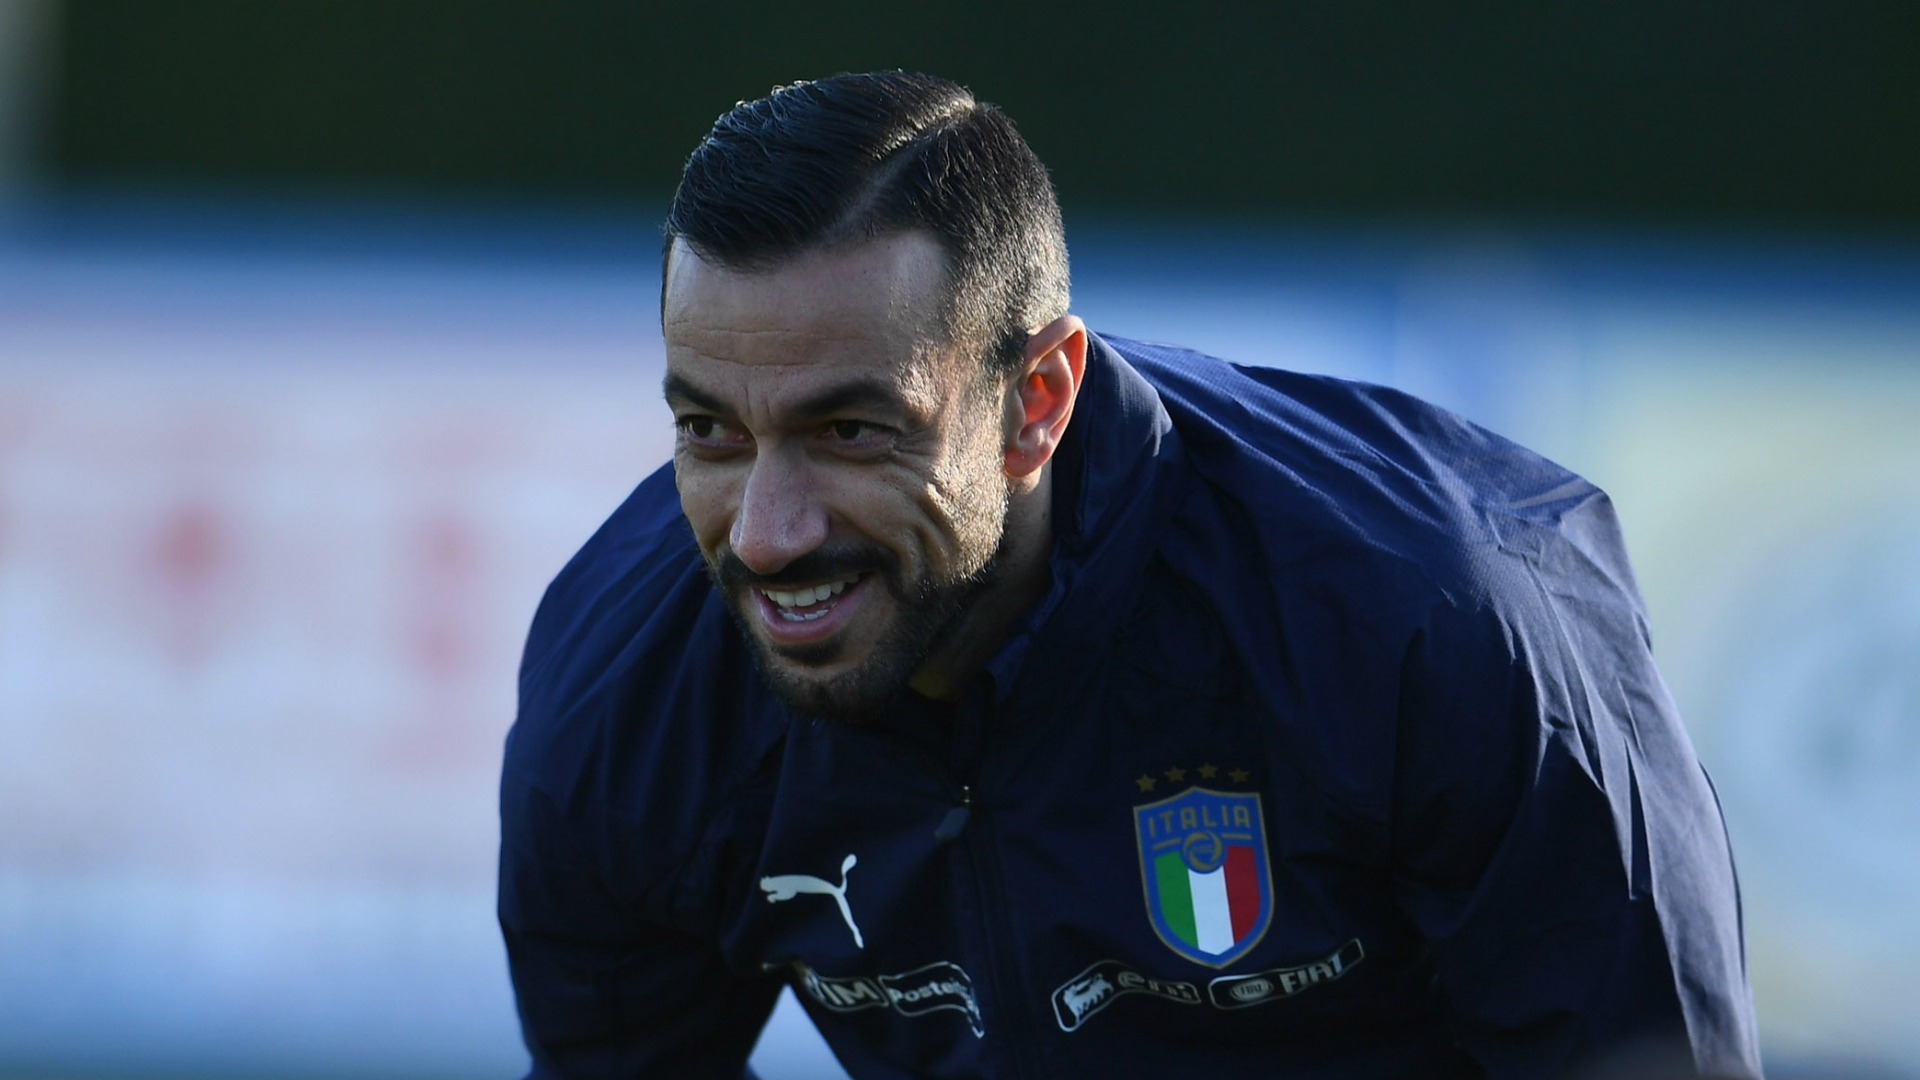 Quagliarella called up by Italy as Balotelli misses out